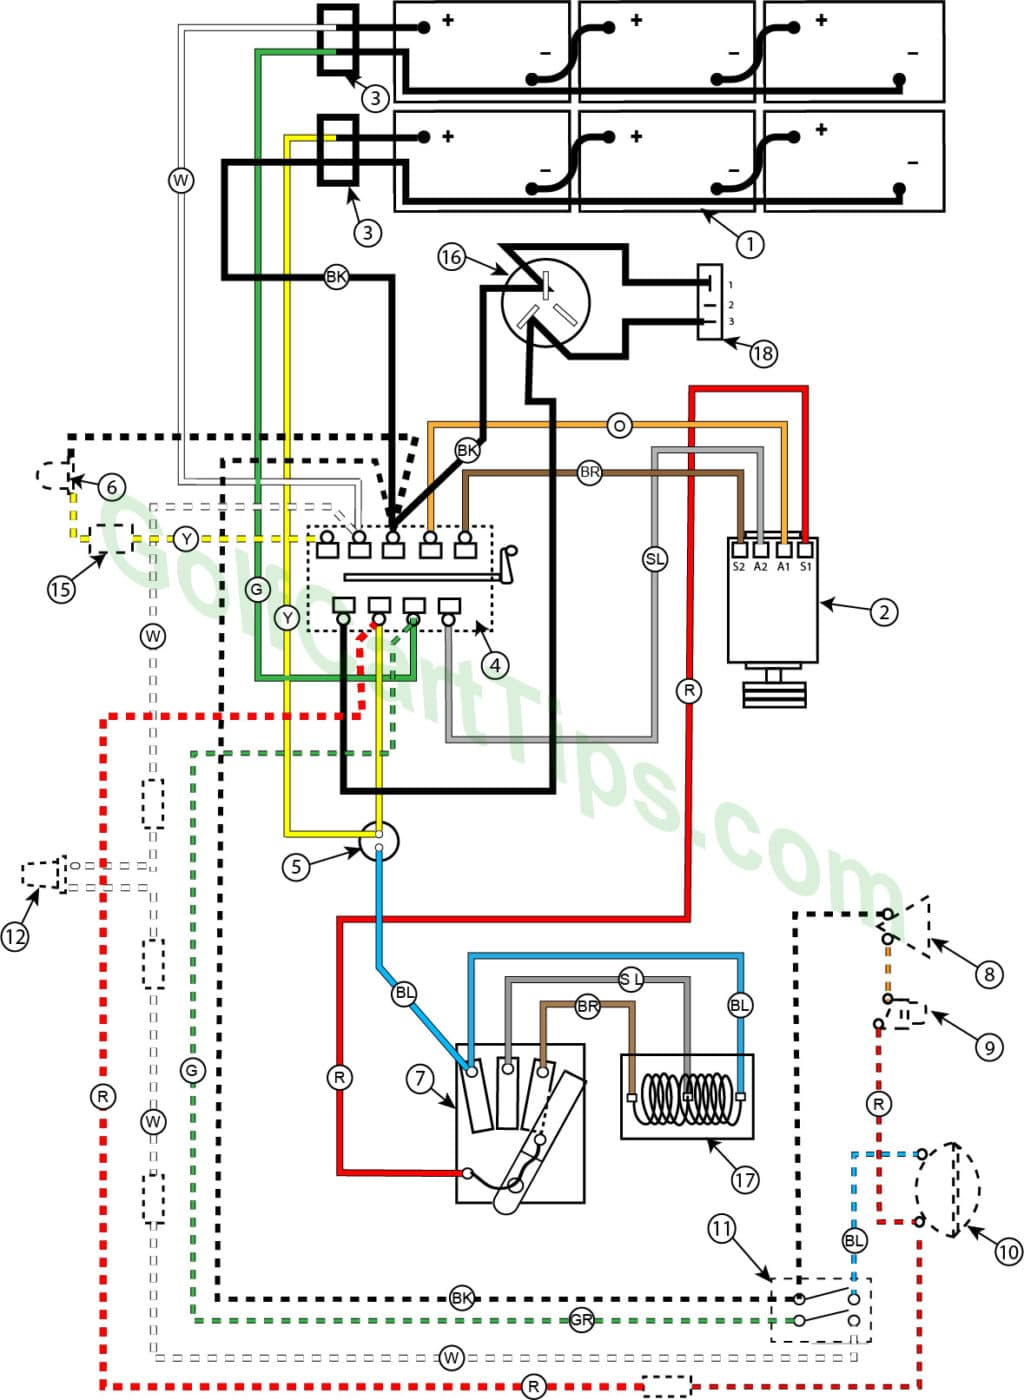 hight resolution of wiring diagram for 1958 model 732 74 36v golfster and 732 72 36v industrial